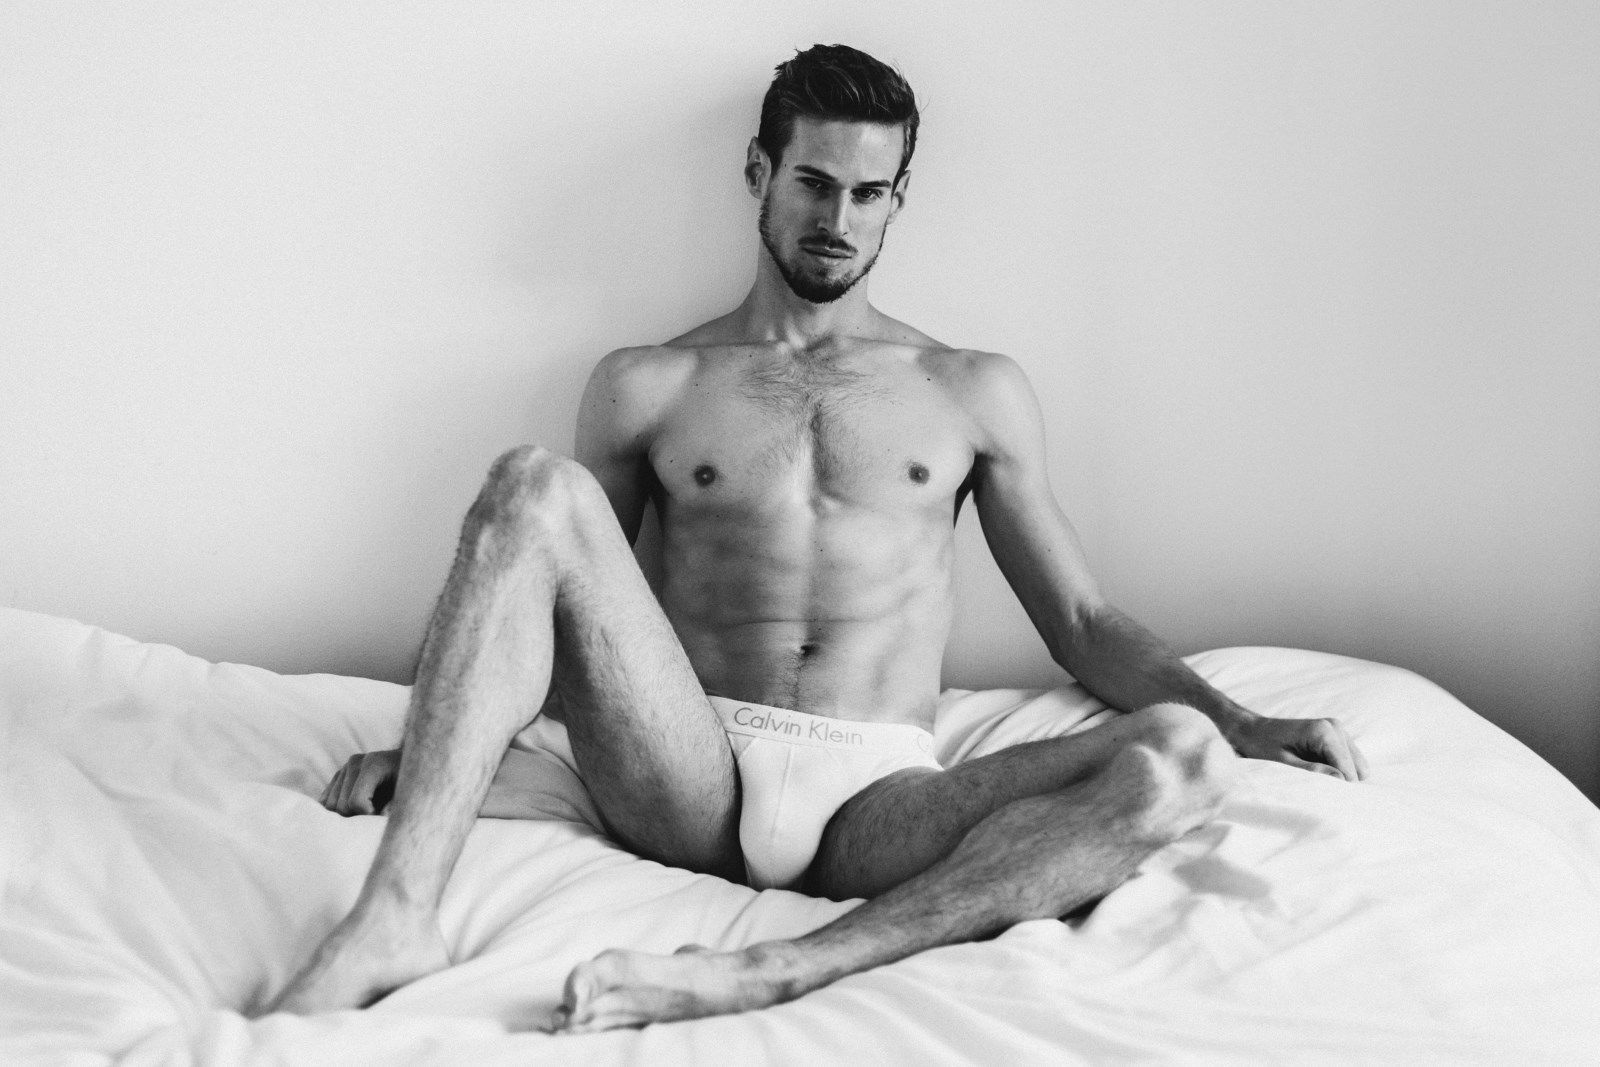 Gorgeous naked males, nude pitcures